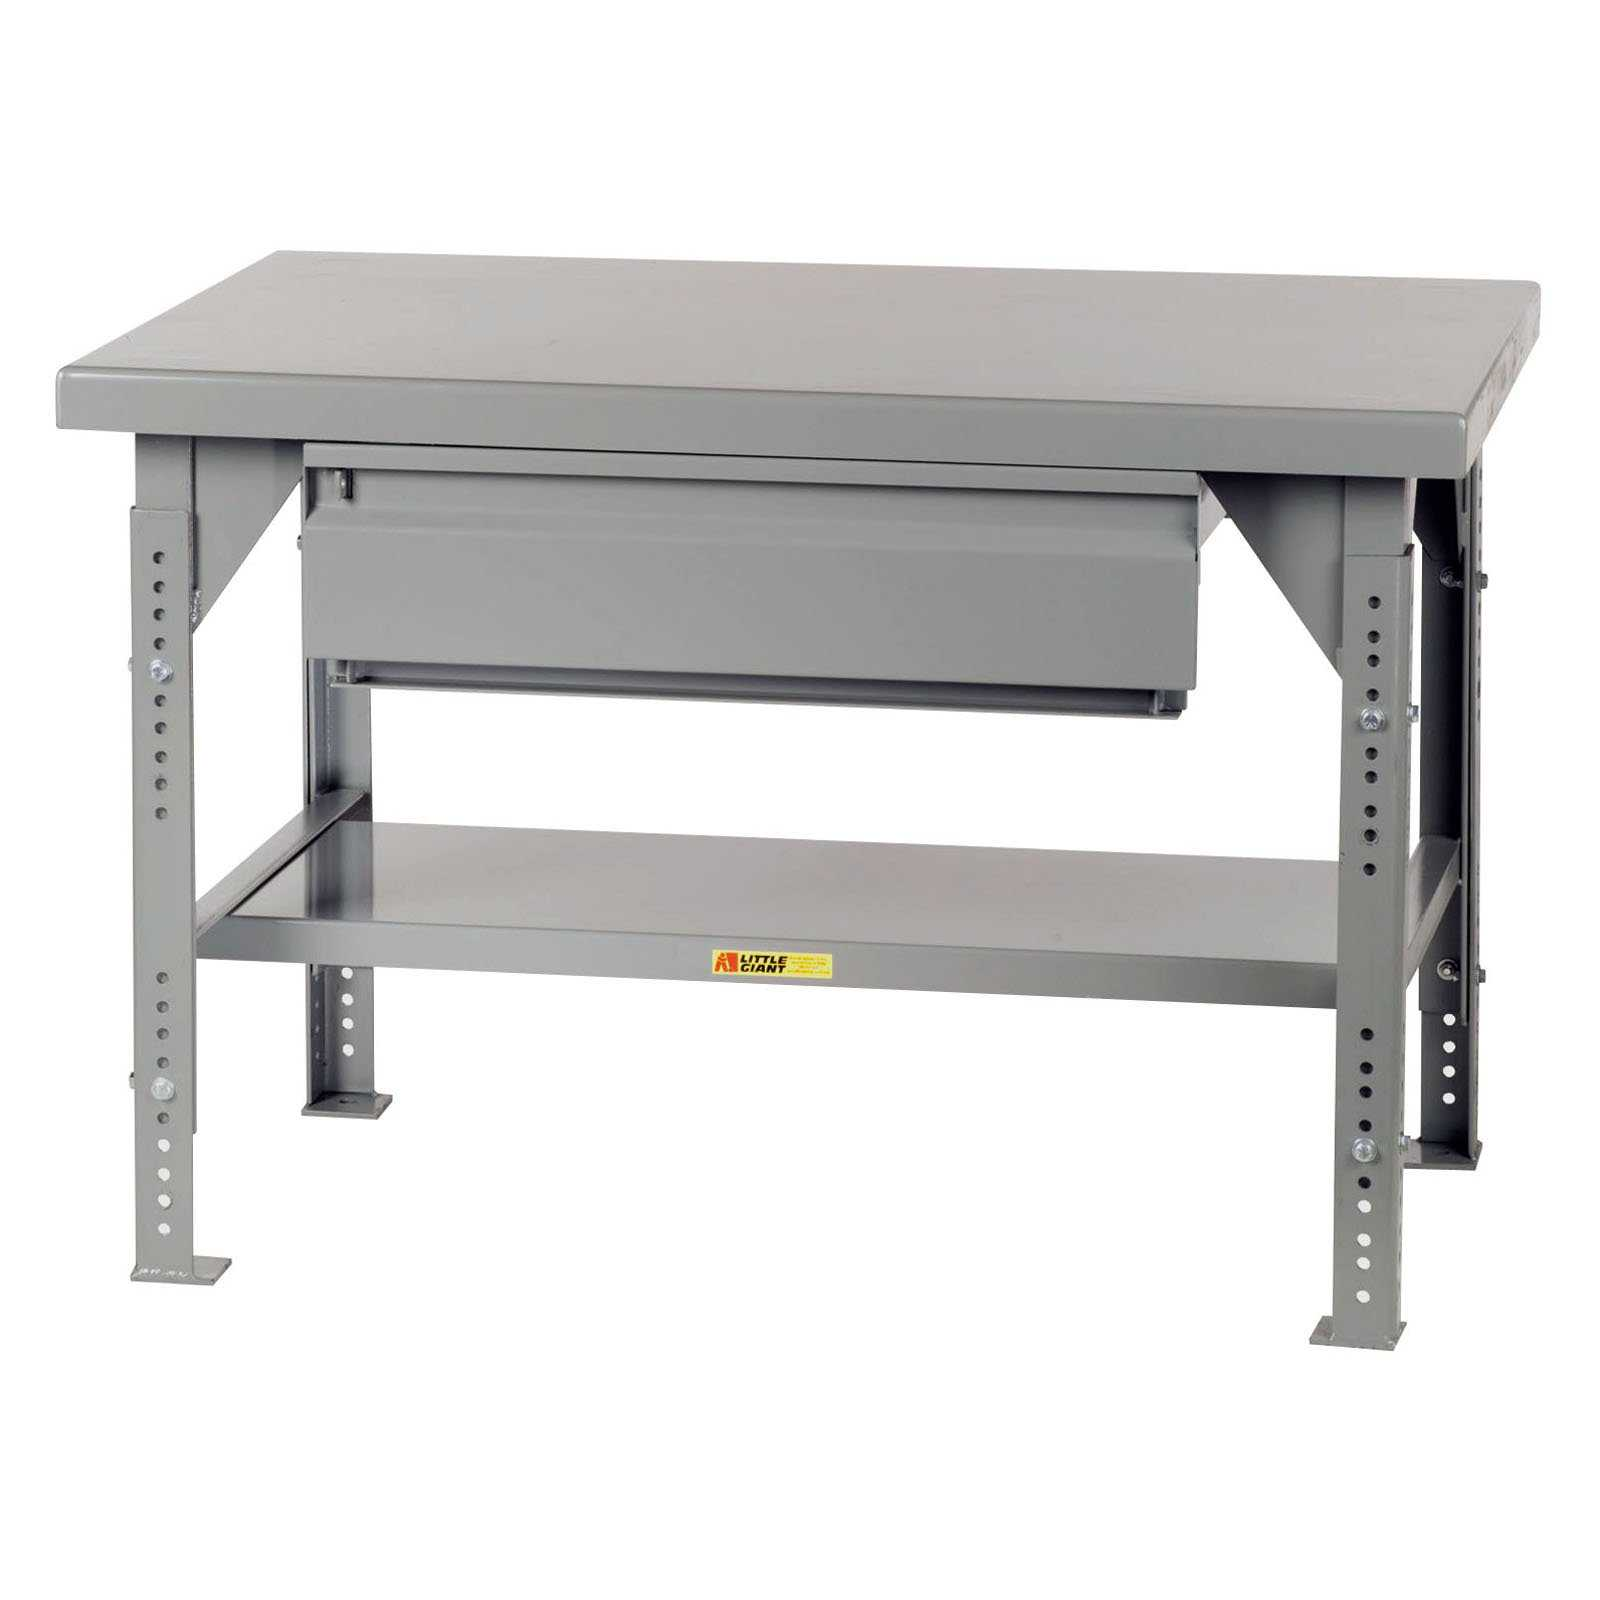 Little Giant Heavy-Duty Workbench with Drawer - Adjustable - 36 x 60 in.